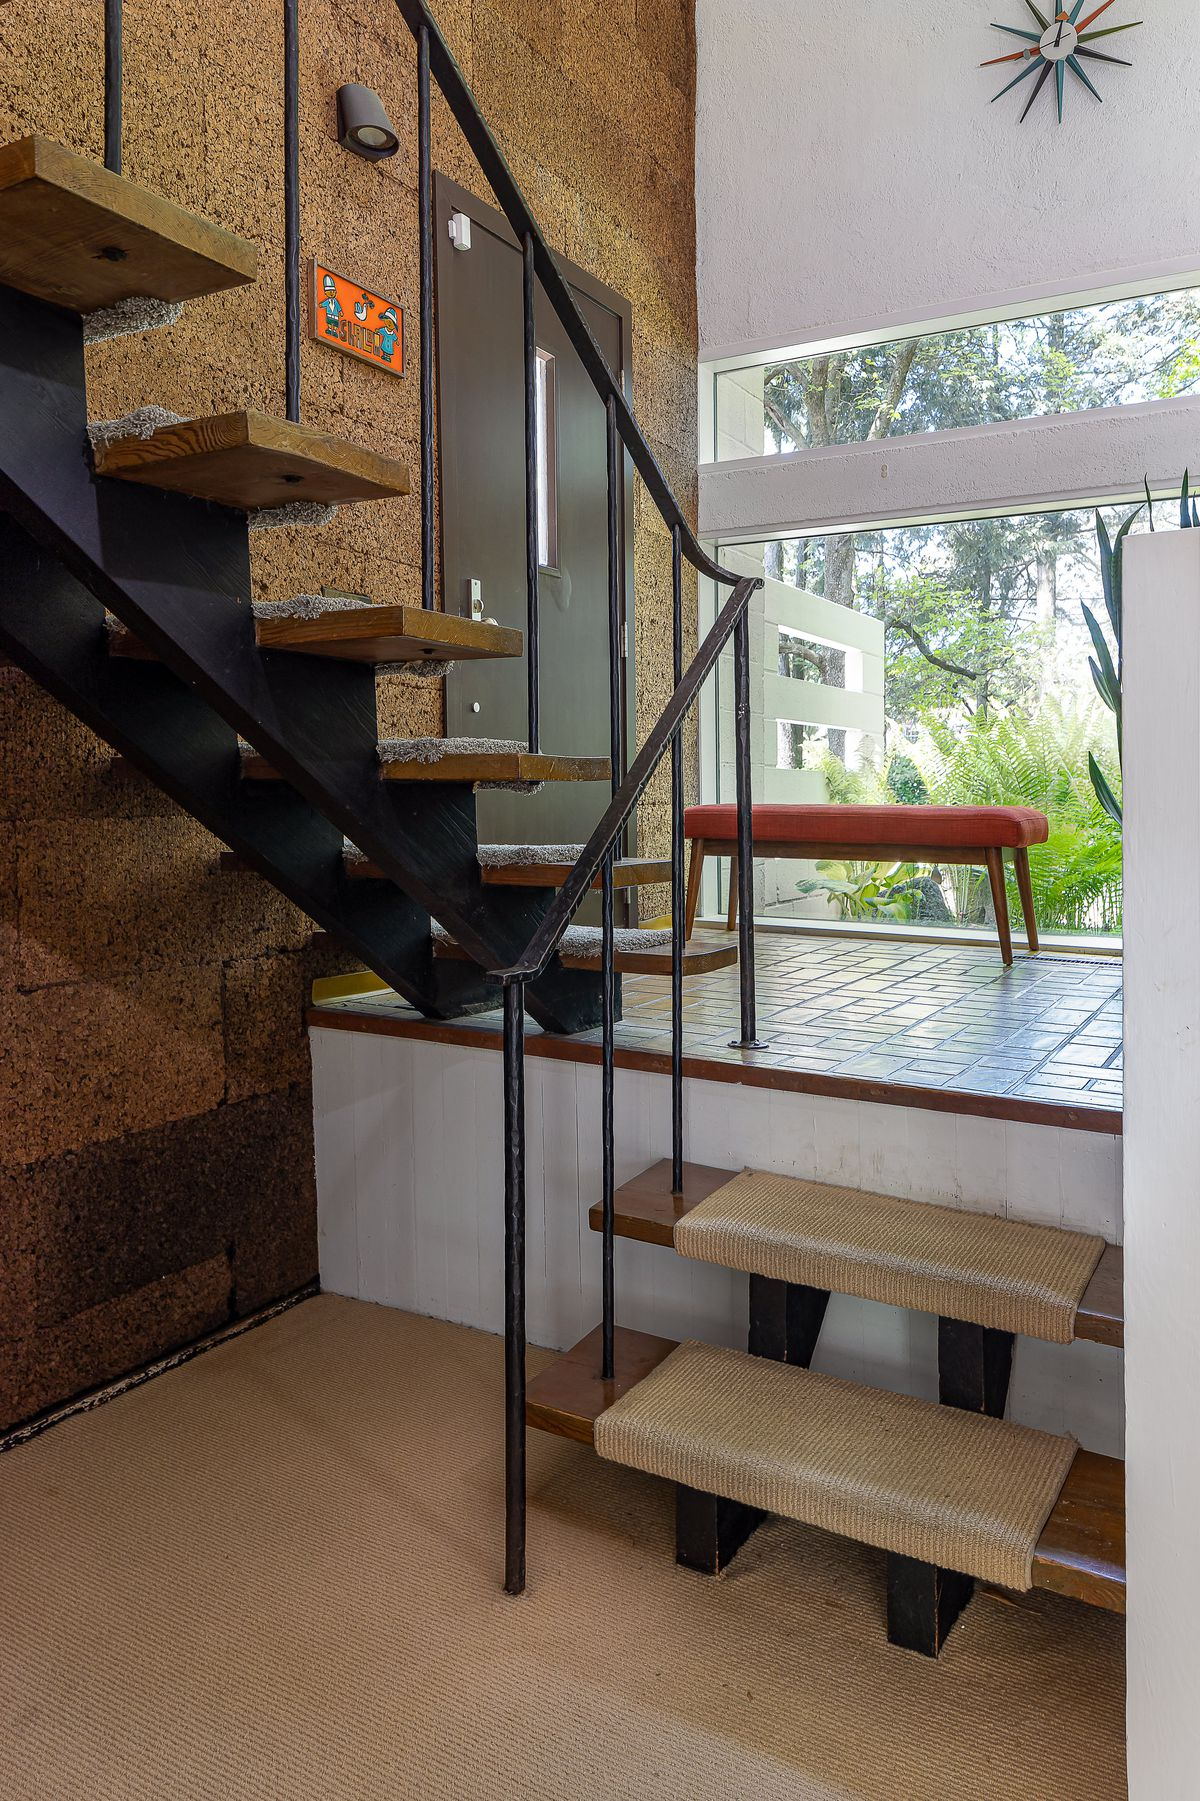 A foyer with glass walls and stairs that go upwards next to cork walls.